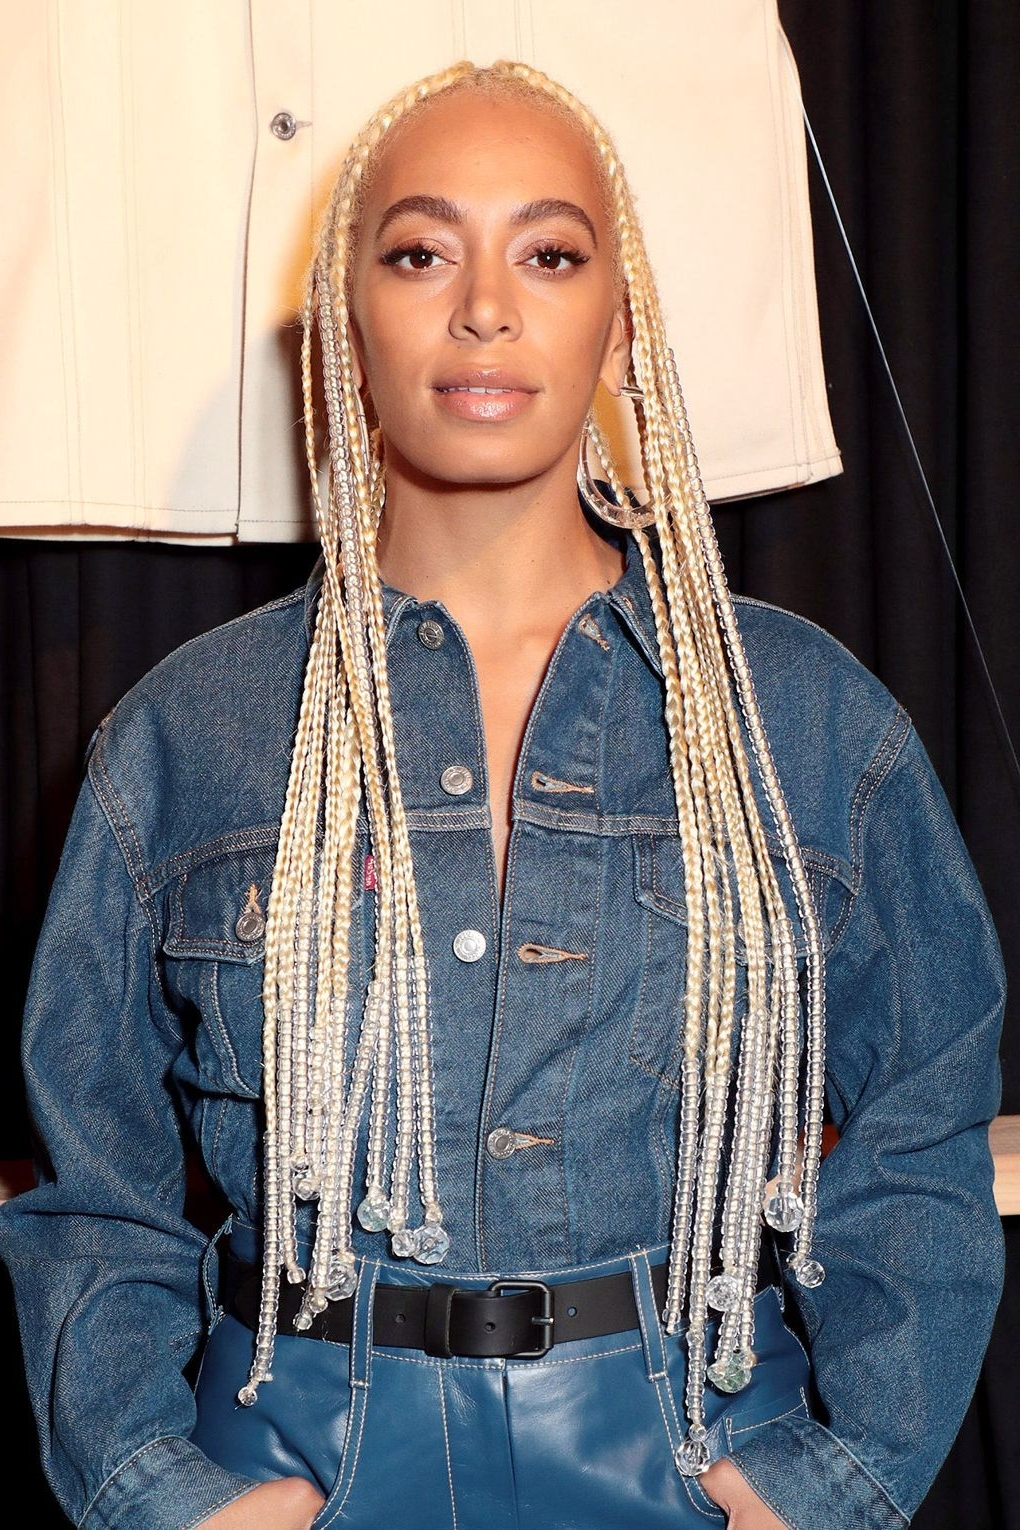 Best And Newest Blonde Braided Hairstyles Intended For The Coolest Celebrity Plaits & Braided Hairstyles (View 1 of 15)